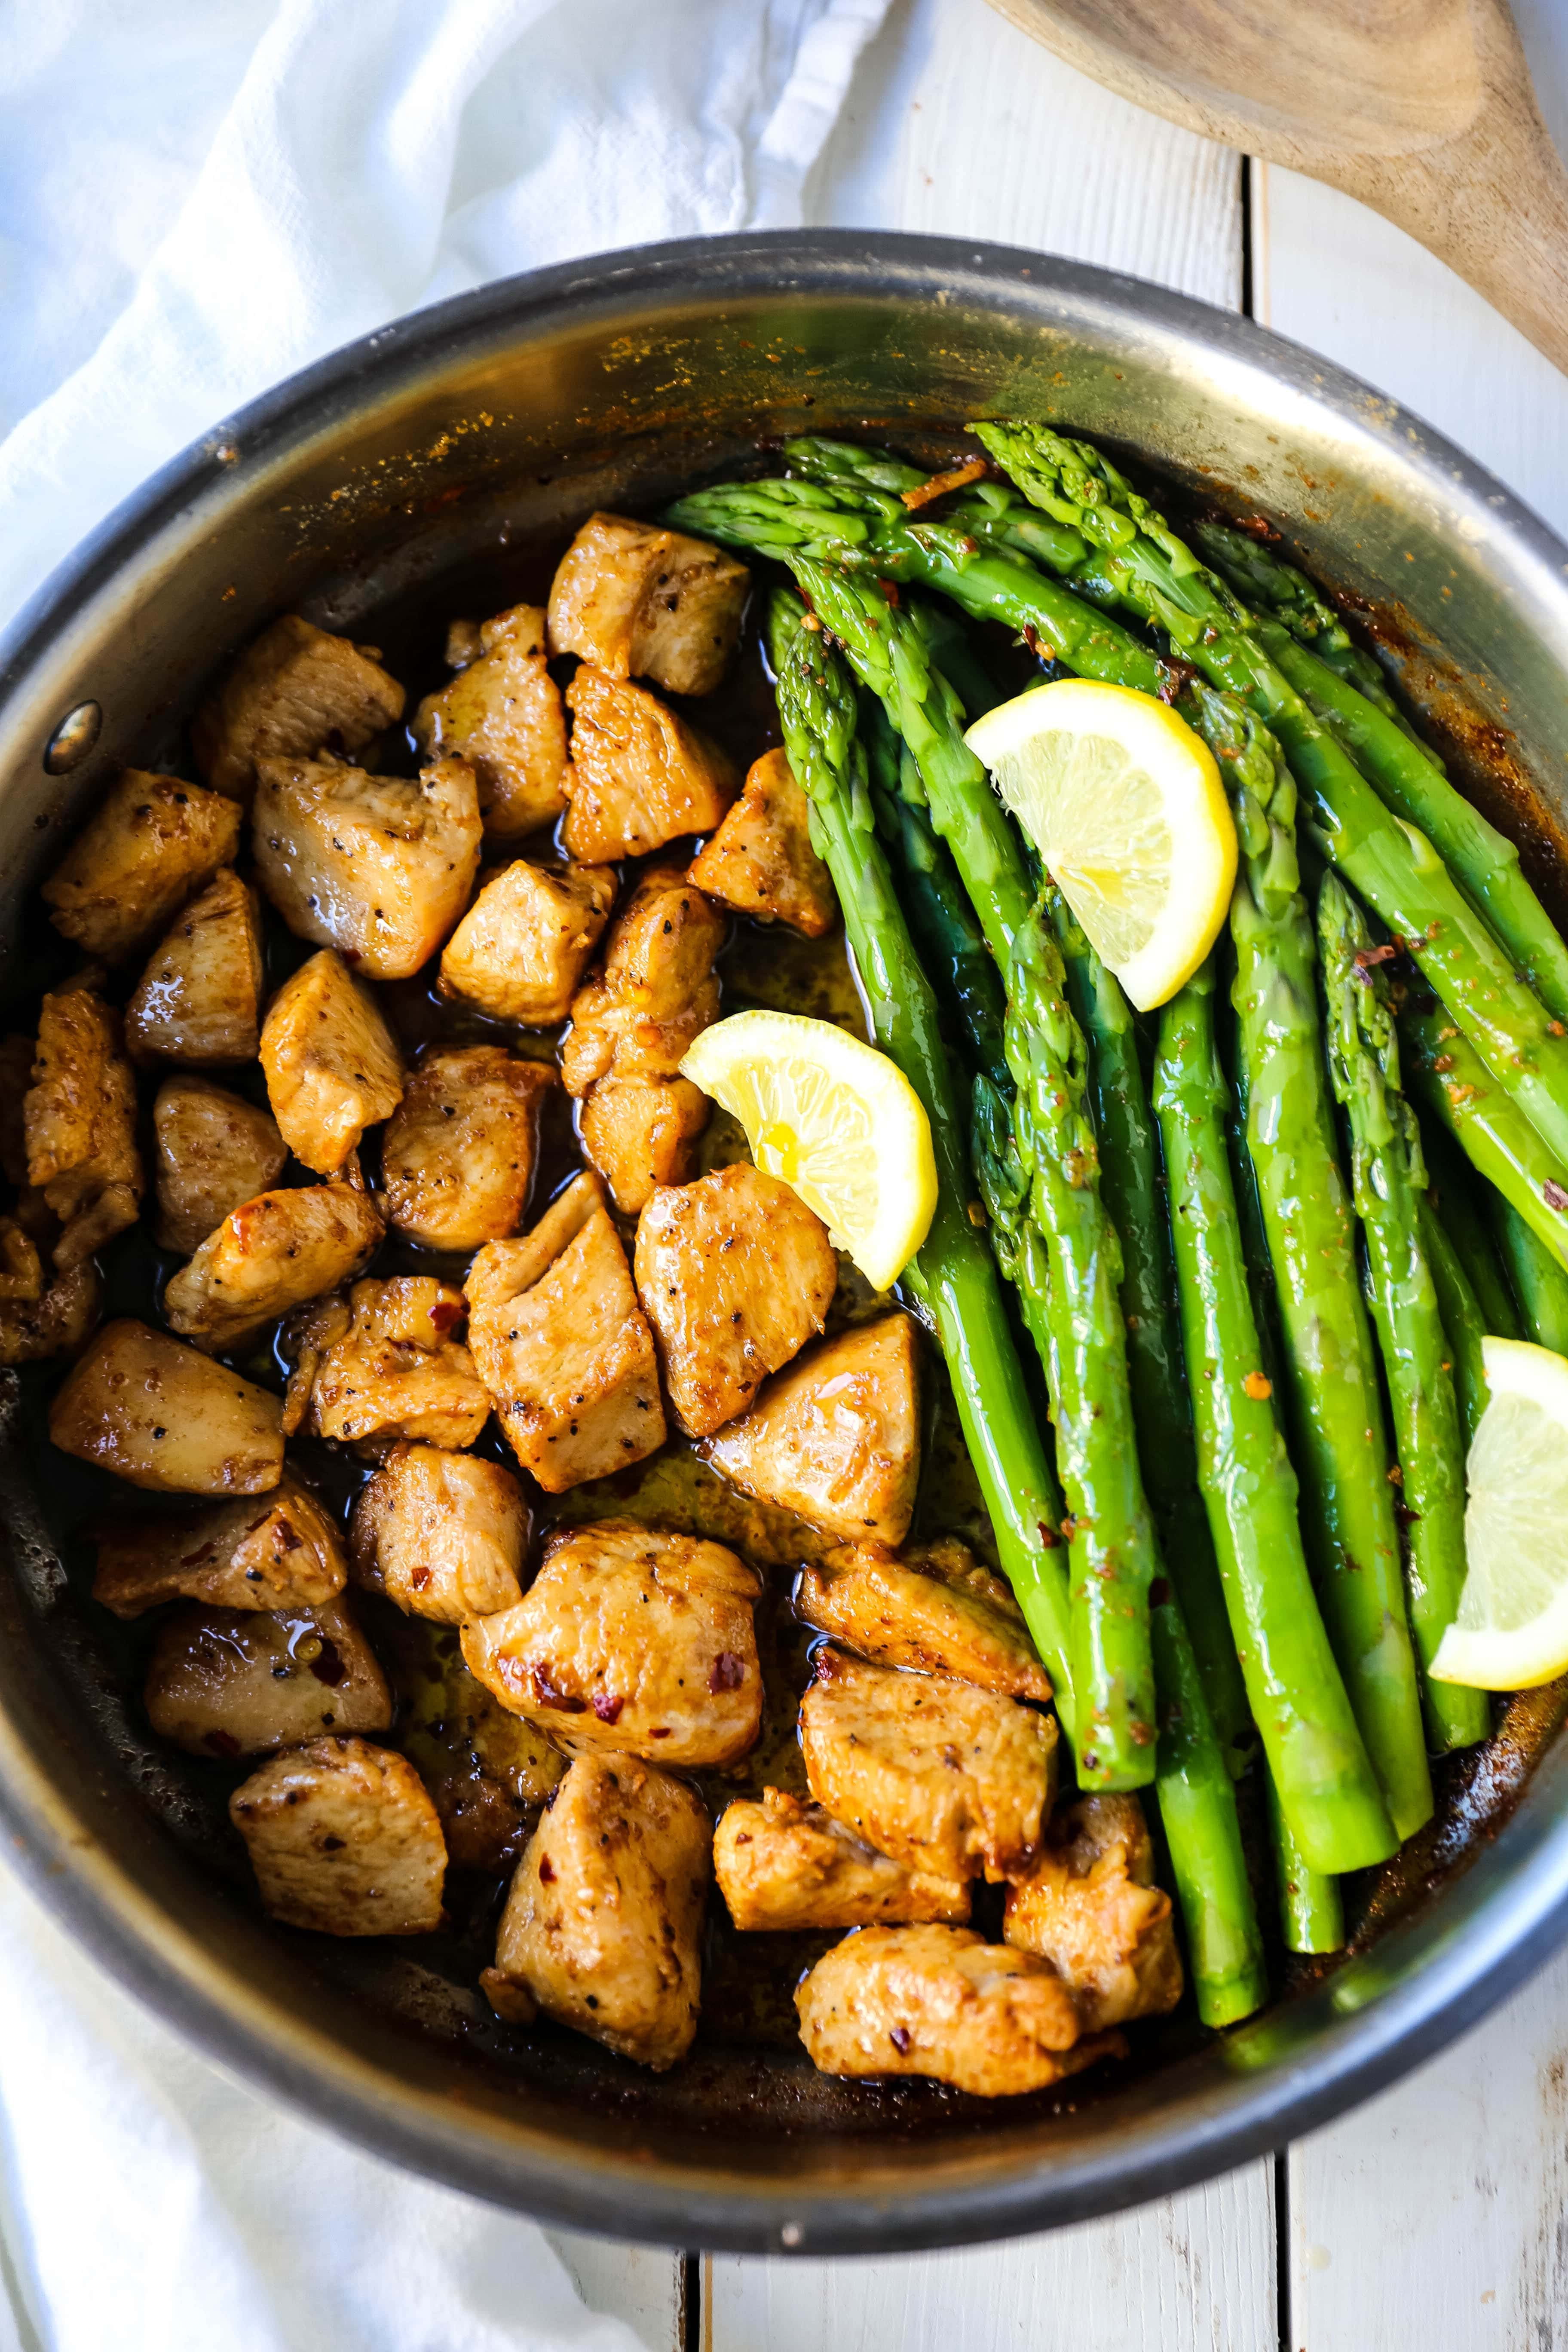 Garlic Butter Chicken and Asparagus Skillet A quick and easy one skillet dinner made with sautéed chicken and asparagus tossed in garlic butter.